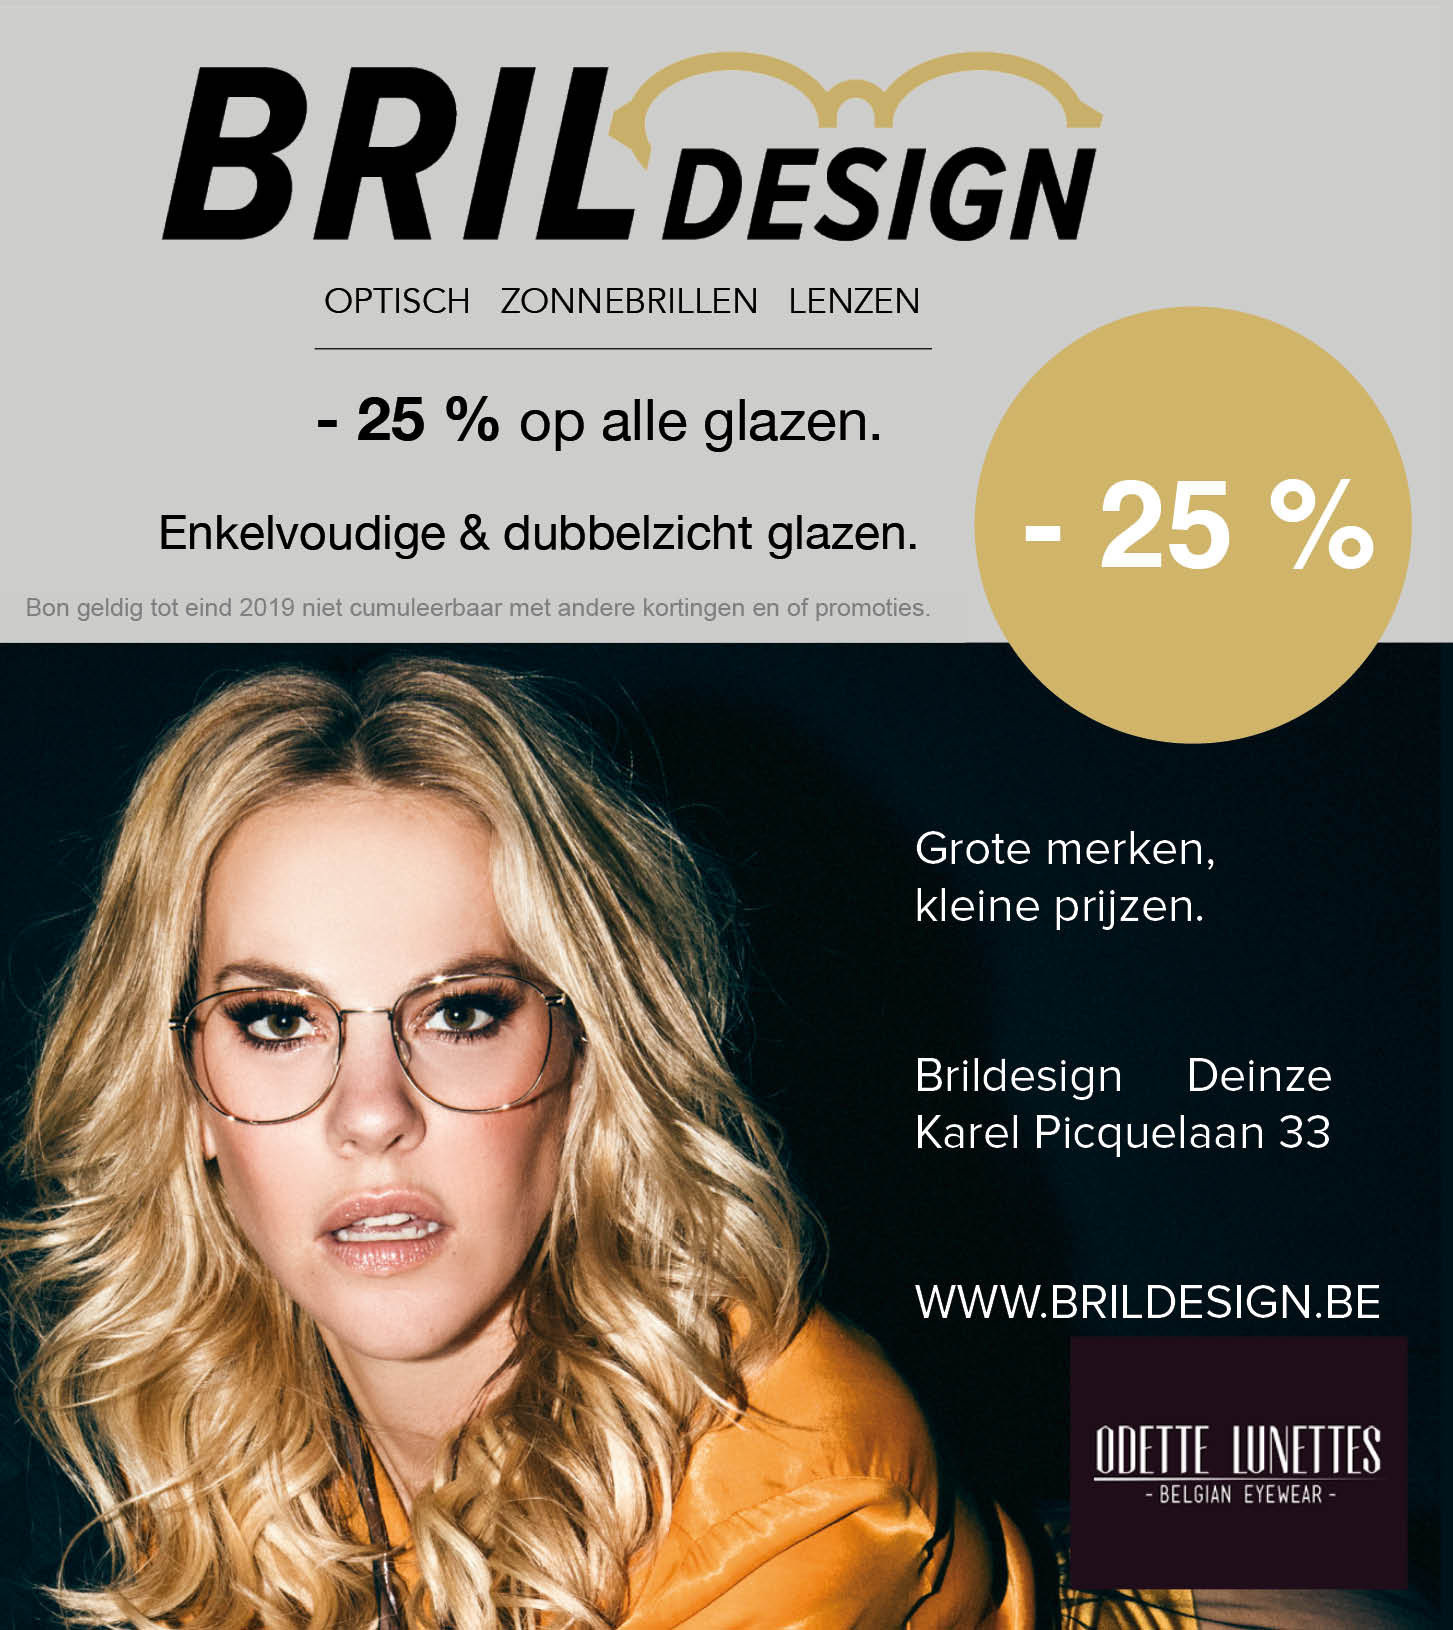 brildesign_yannick_deinze_sept_2019.jpg